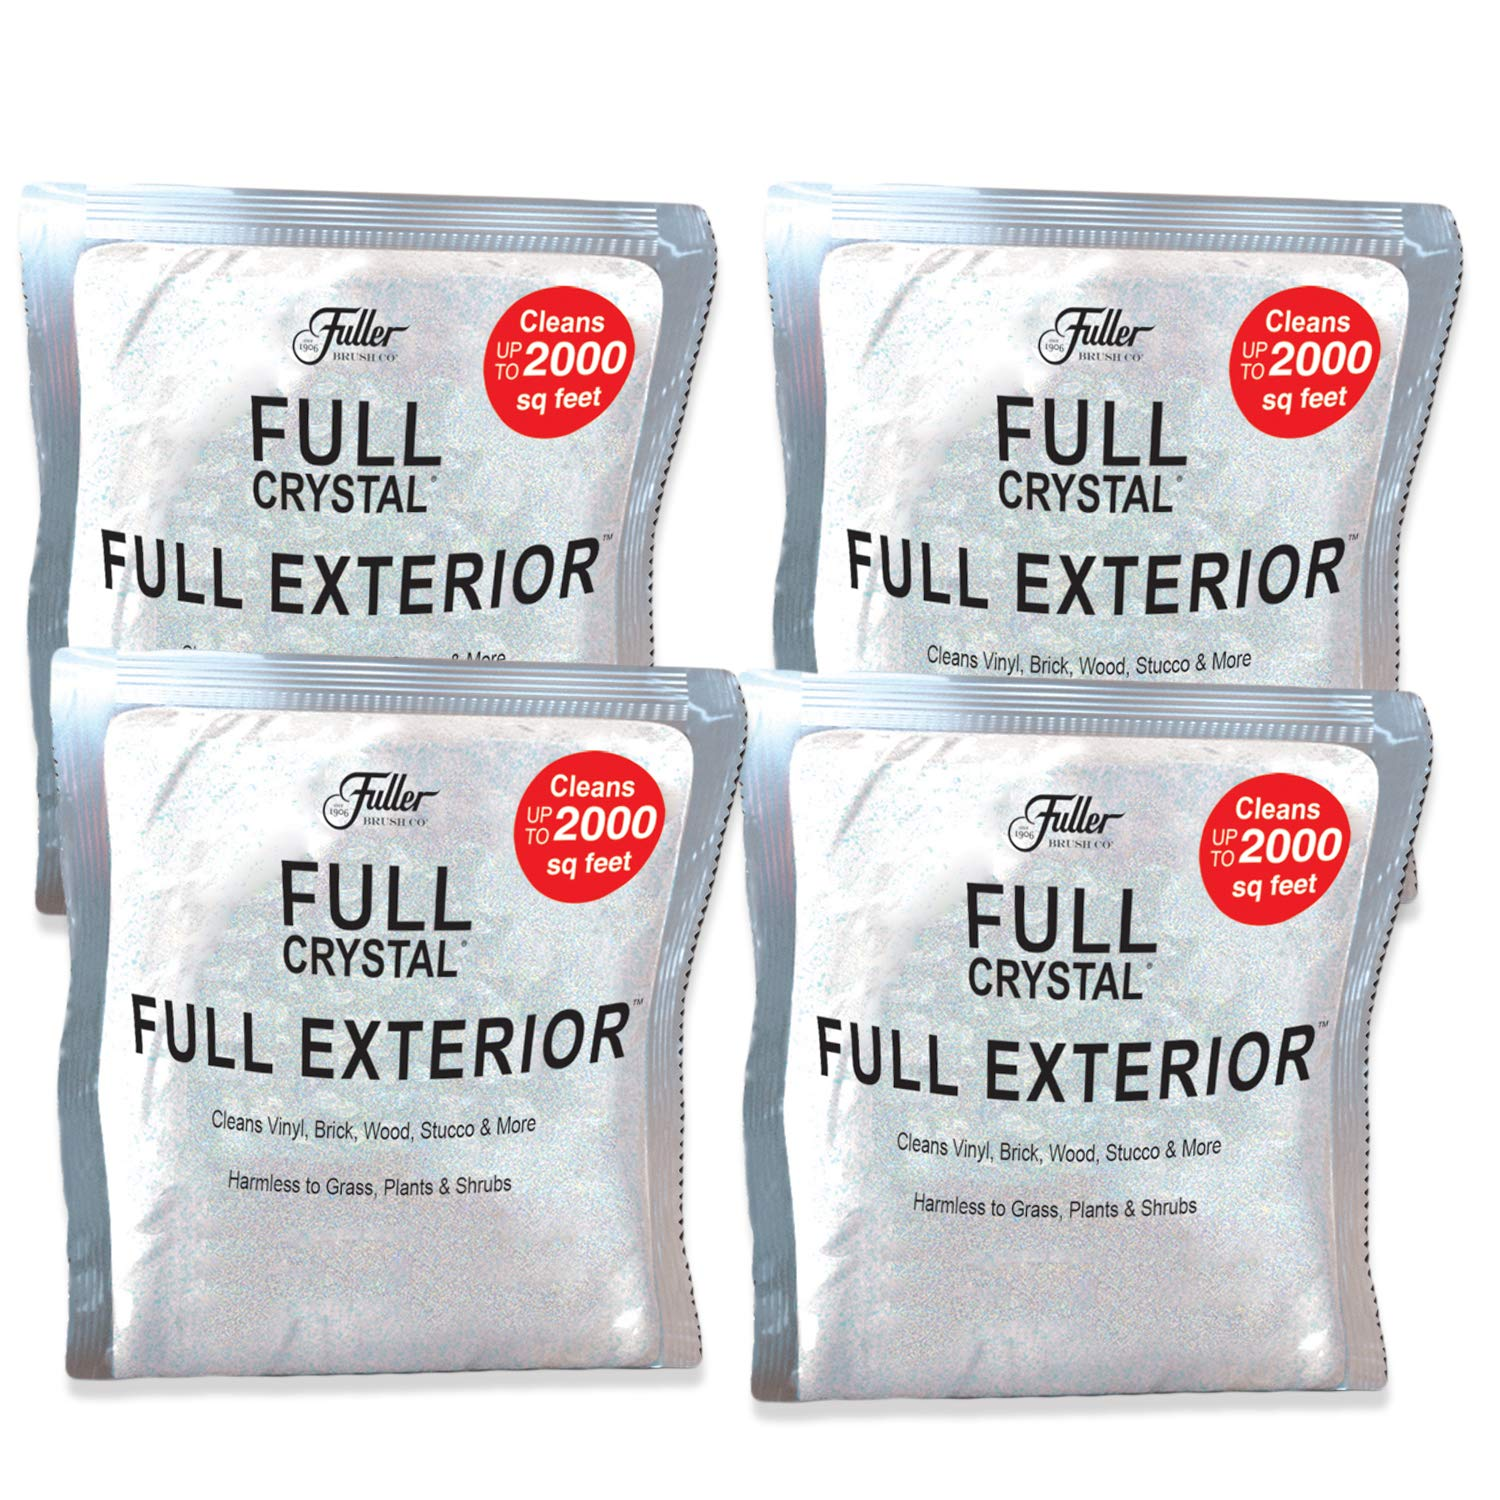 Full Exterior 1 LB. Refill Kit - Four 4oz. Crystal Powder Outdoor Cleaner Packets (Cleans Up to 8,000 Sq. Ft): Non-Toxic, No Scrub, No Rinse Cleaning Solution by Full Crystal (Image #1)